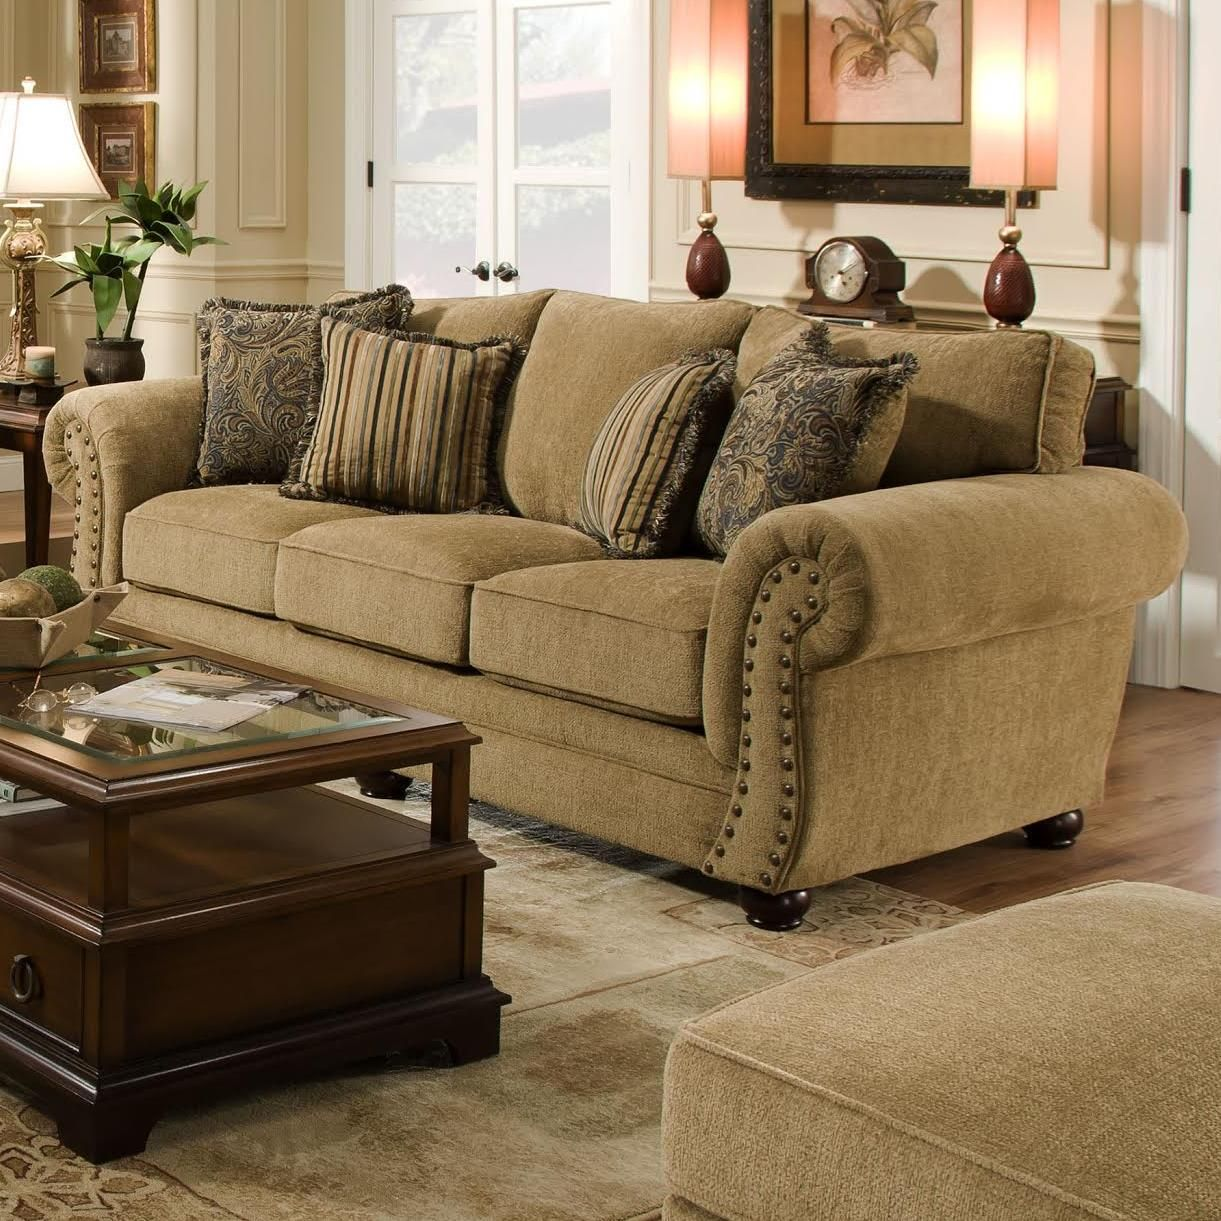 shop for the united furniture industries sofa at miskelly furniture your jackson mississippi furniture u0026 mattress store